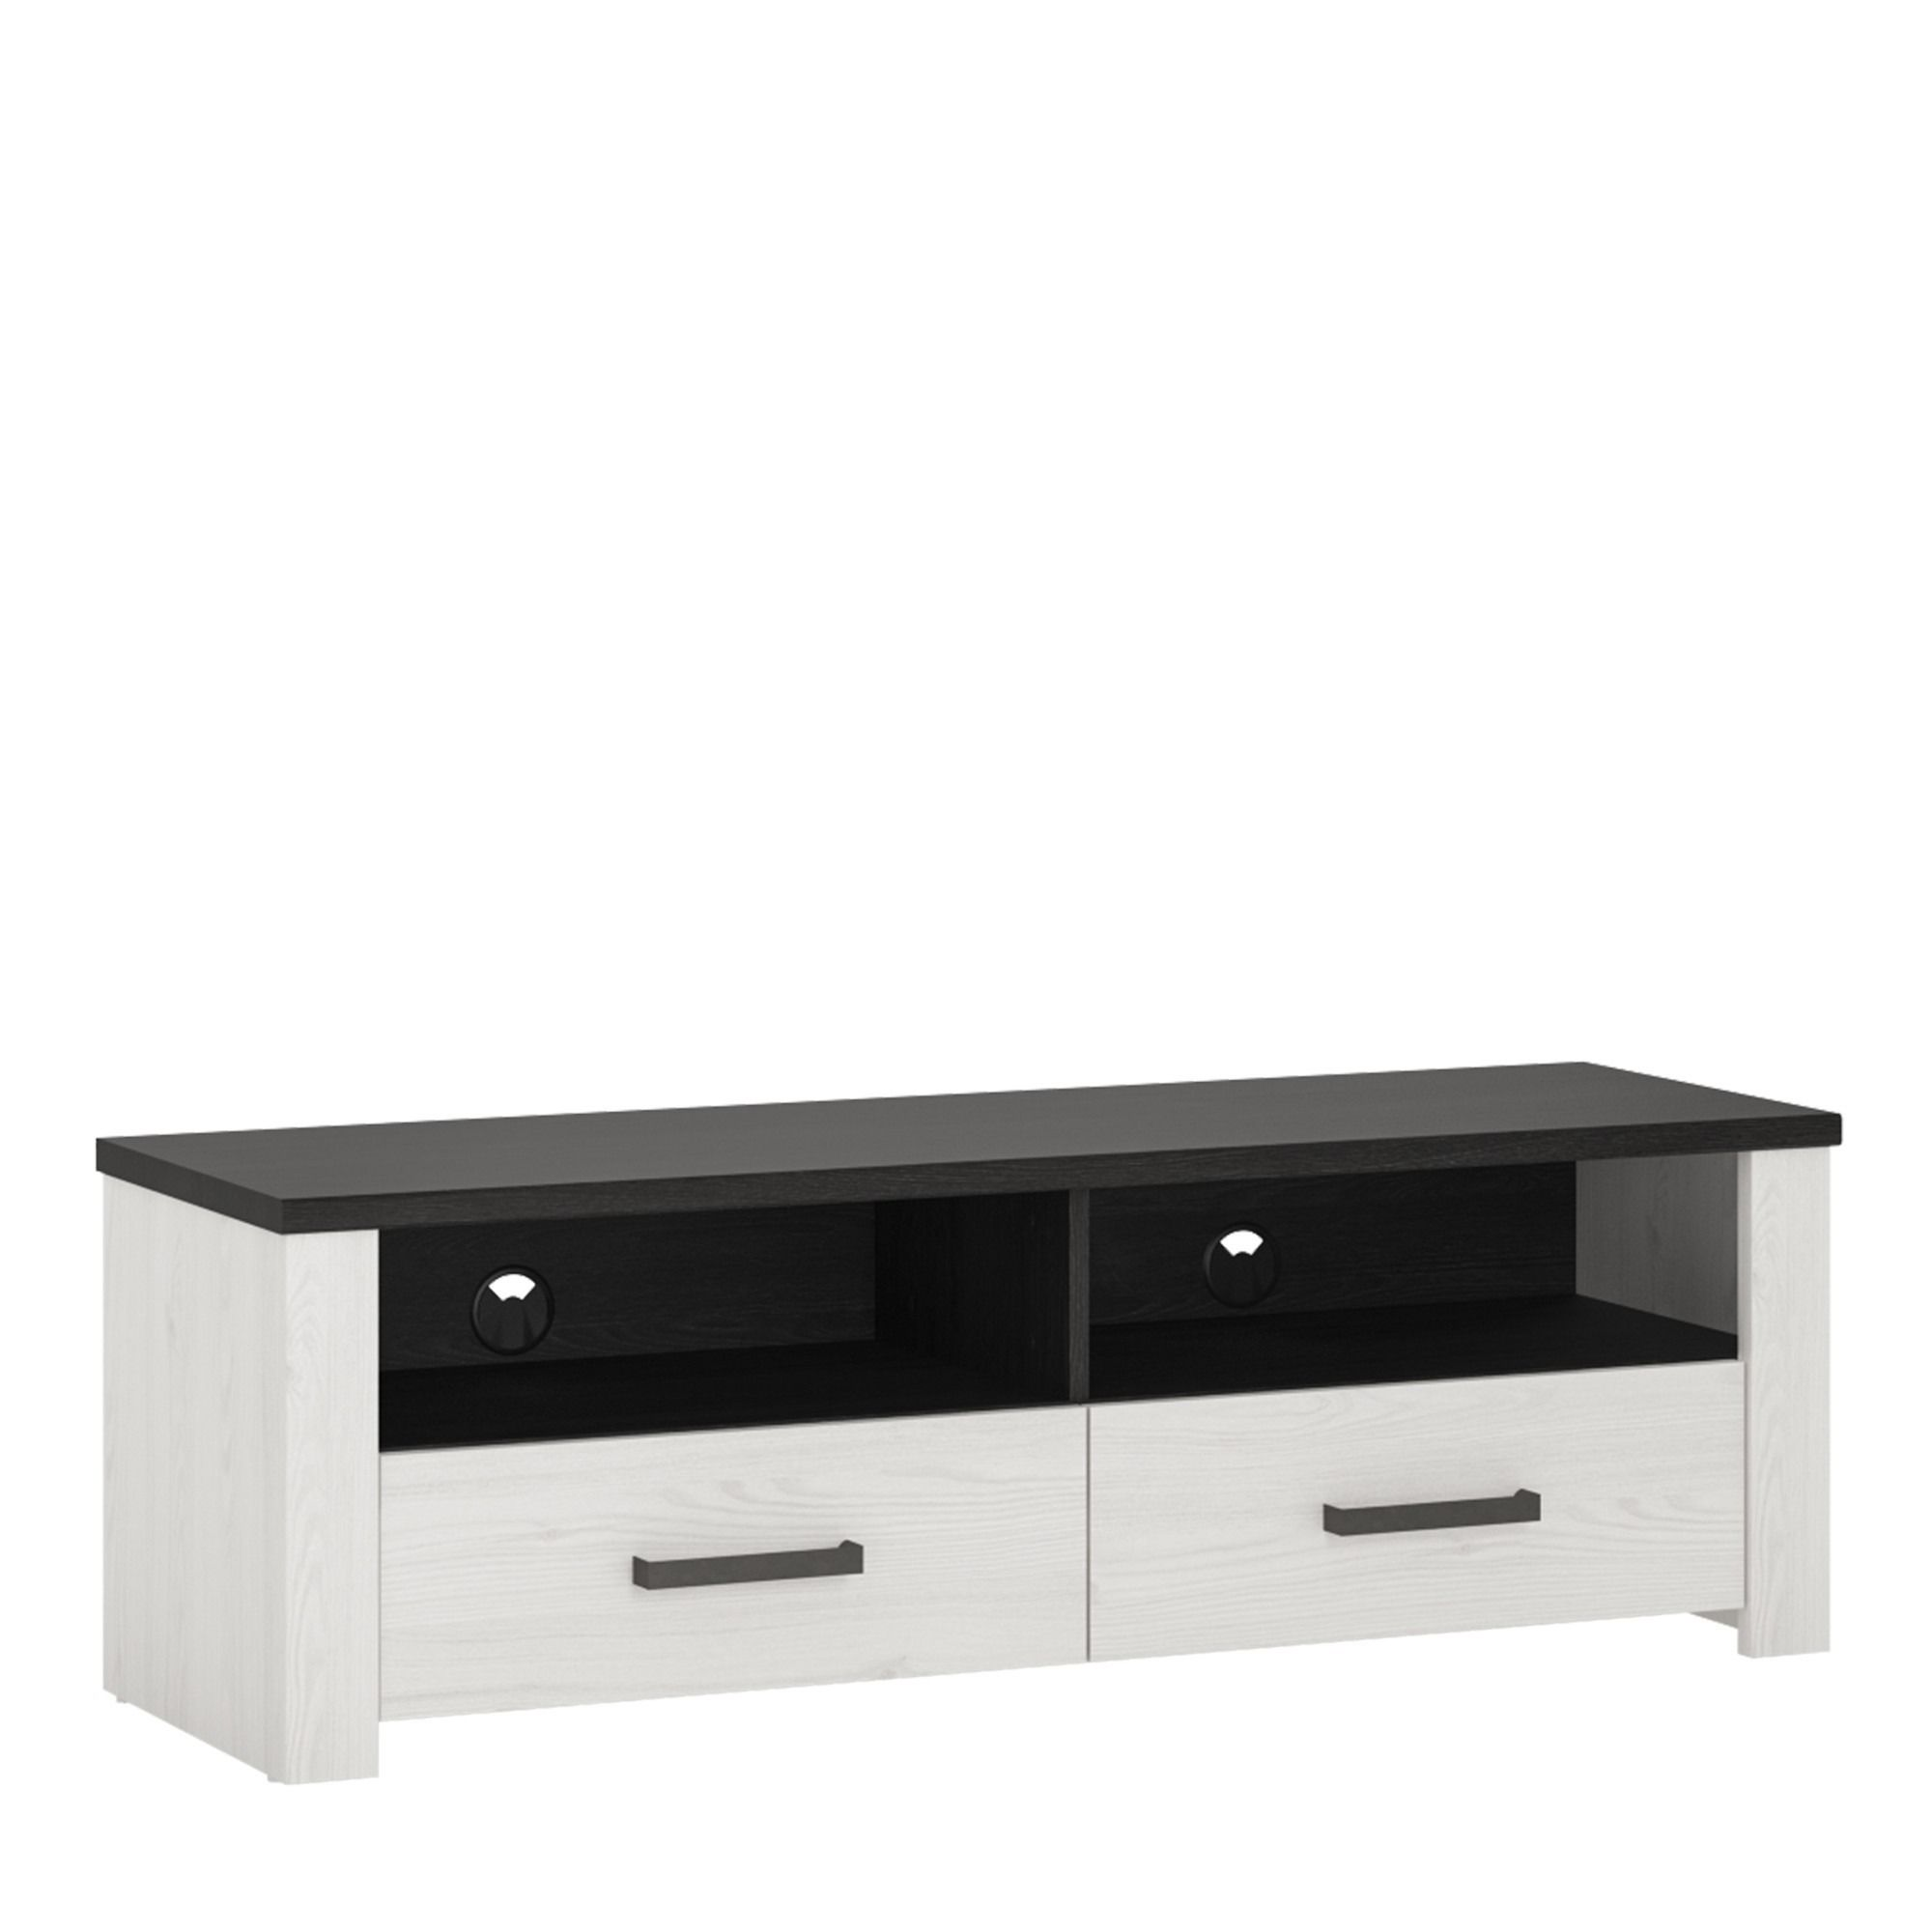 Provence 127cm Wide 2 Drawer TV Cabinet   Nice Compact 127cm Wide And Low TV  Stand